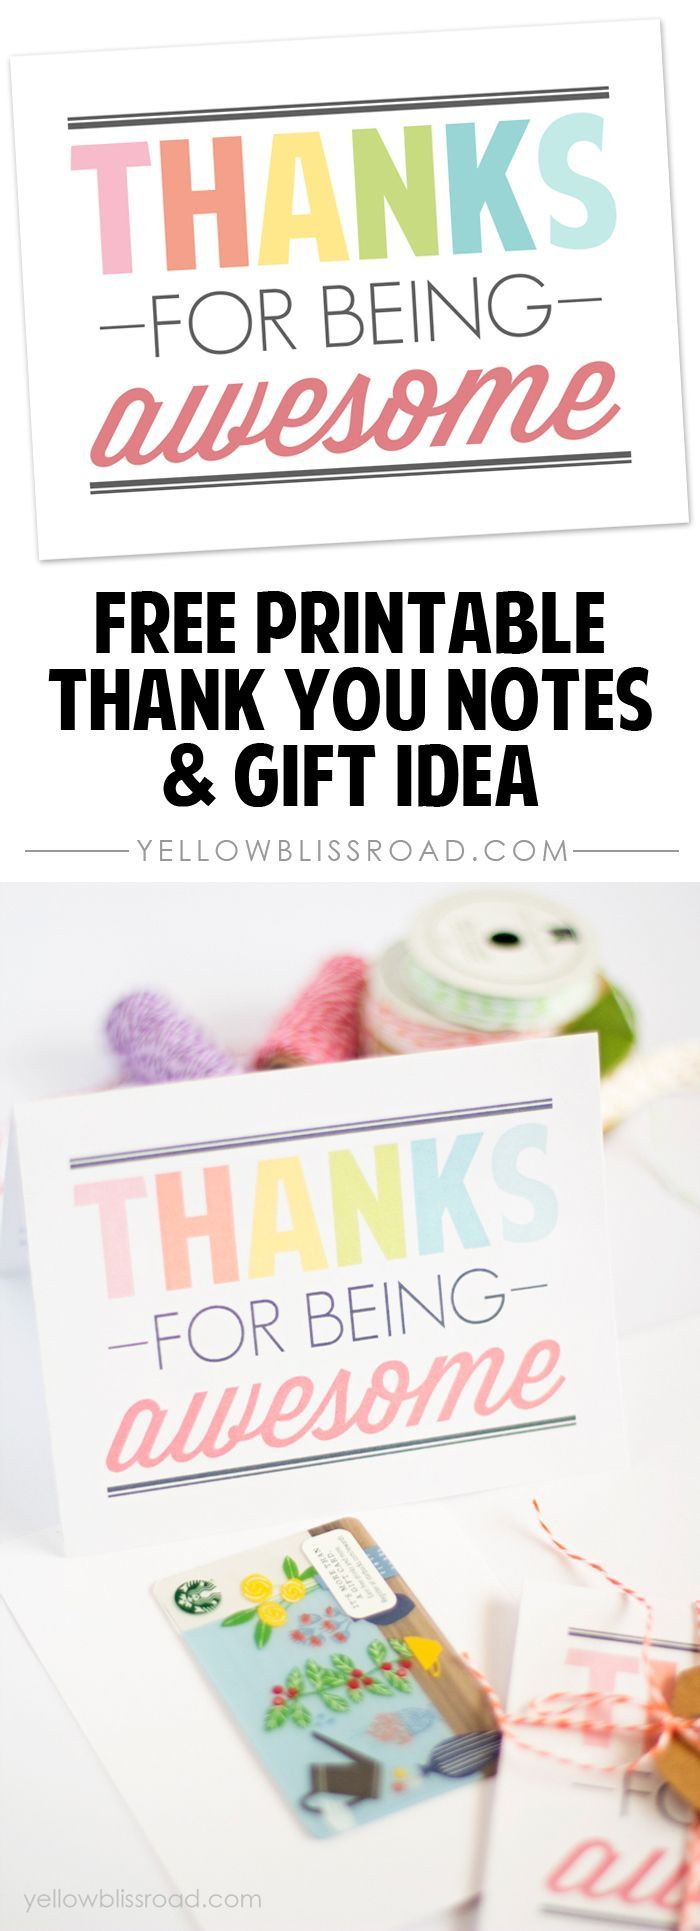 56 best MAKE Thank You Gifts images – Free Printable Religious Thank You Cards